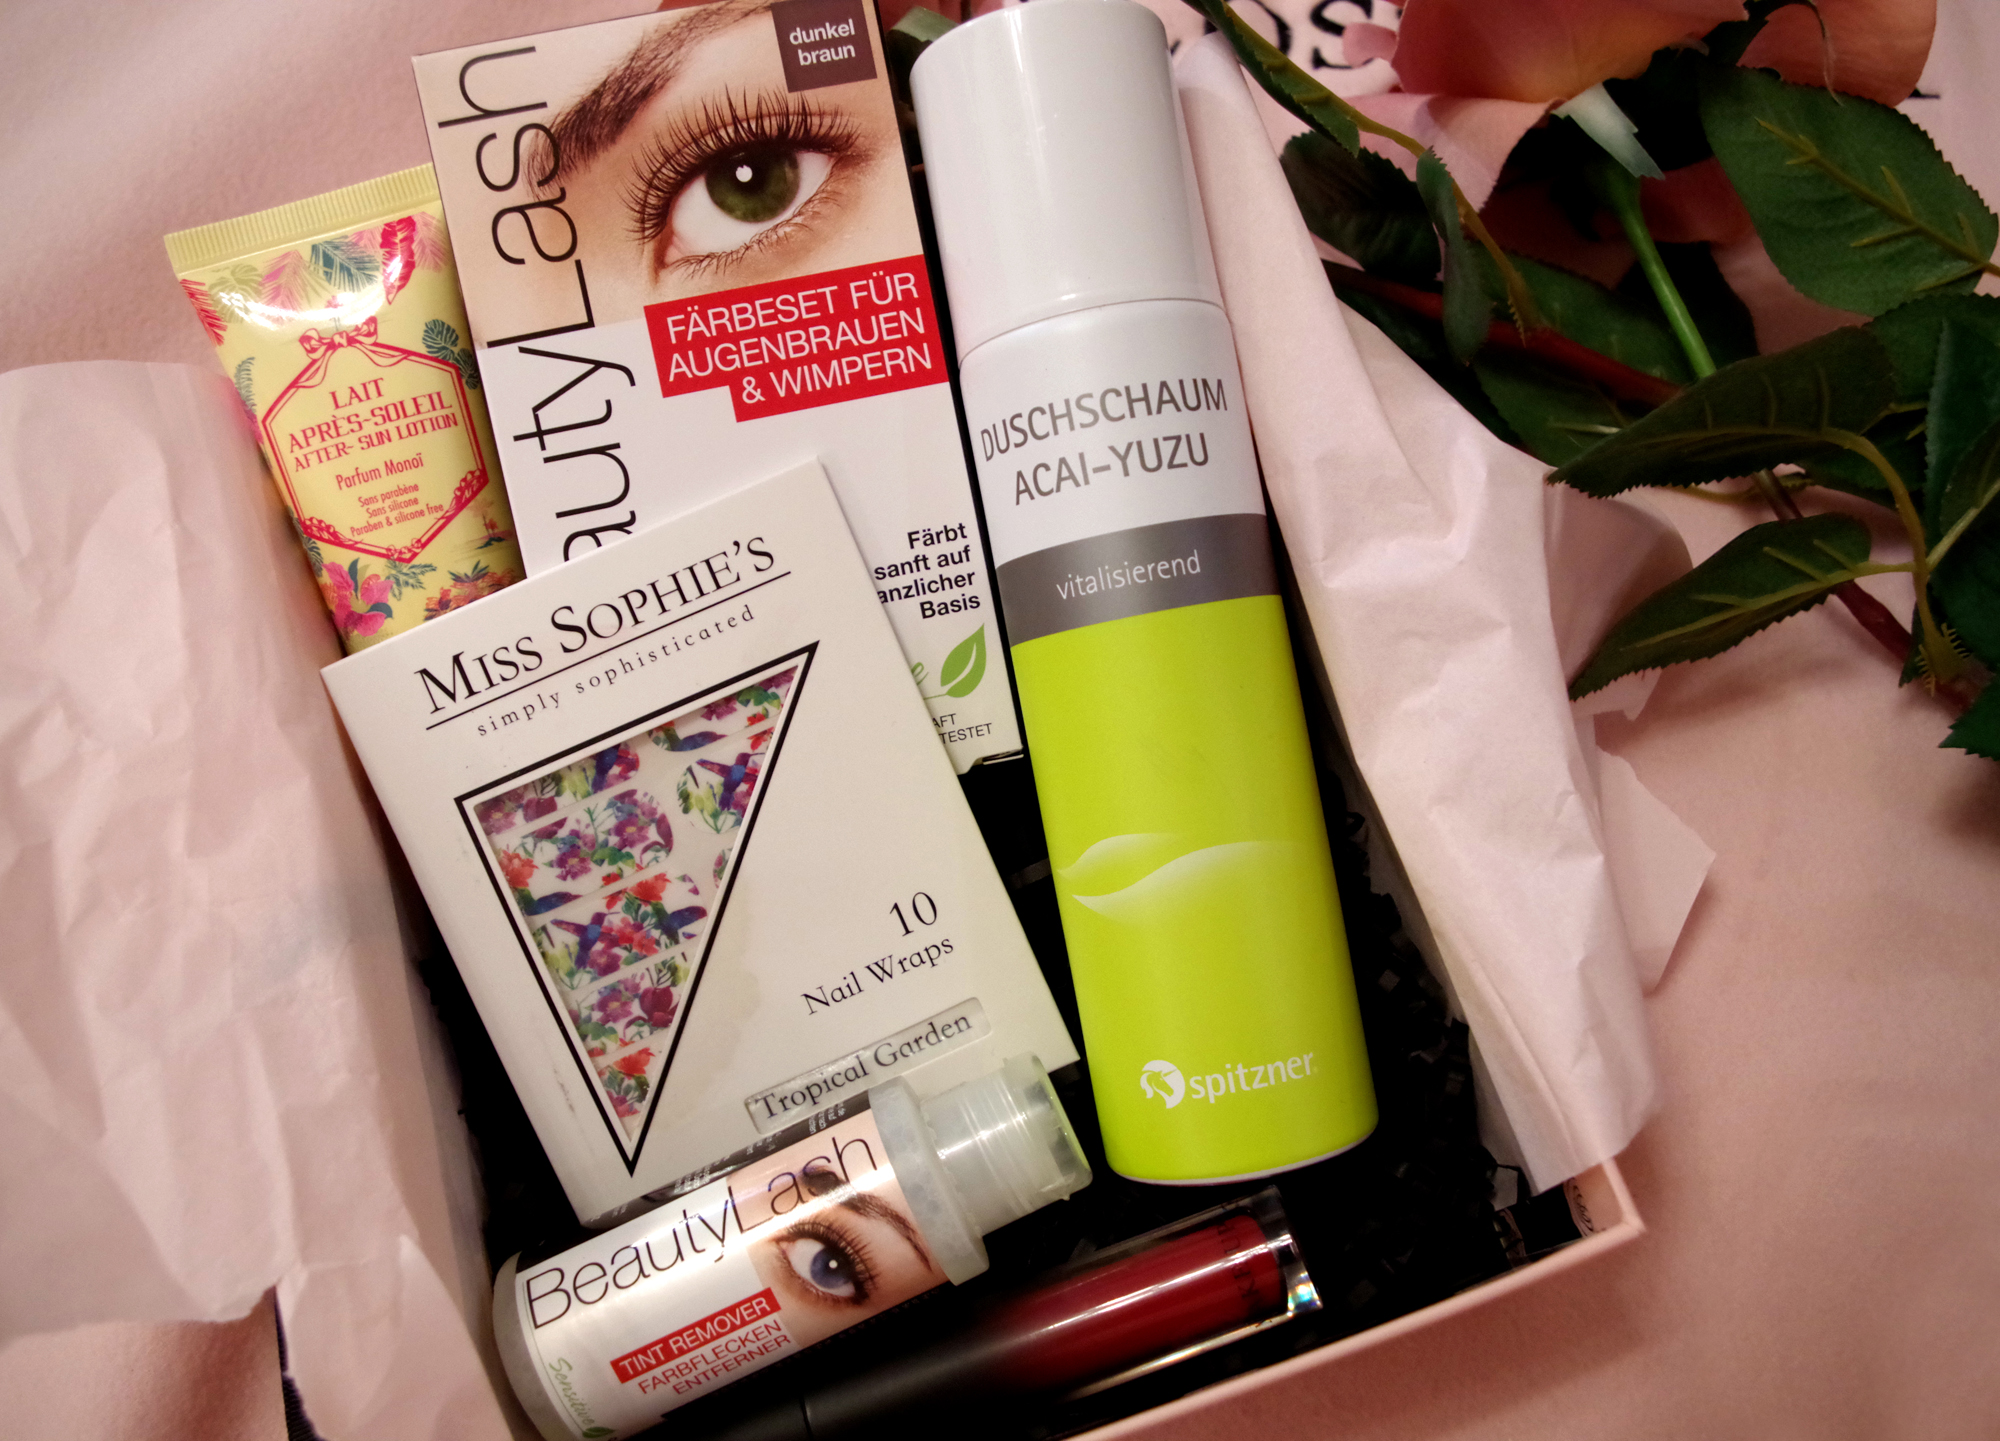 Glossybox-Inhalt-2016-pretty-picknick-glossy-fleurrly.jpg